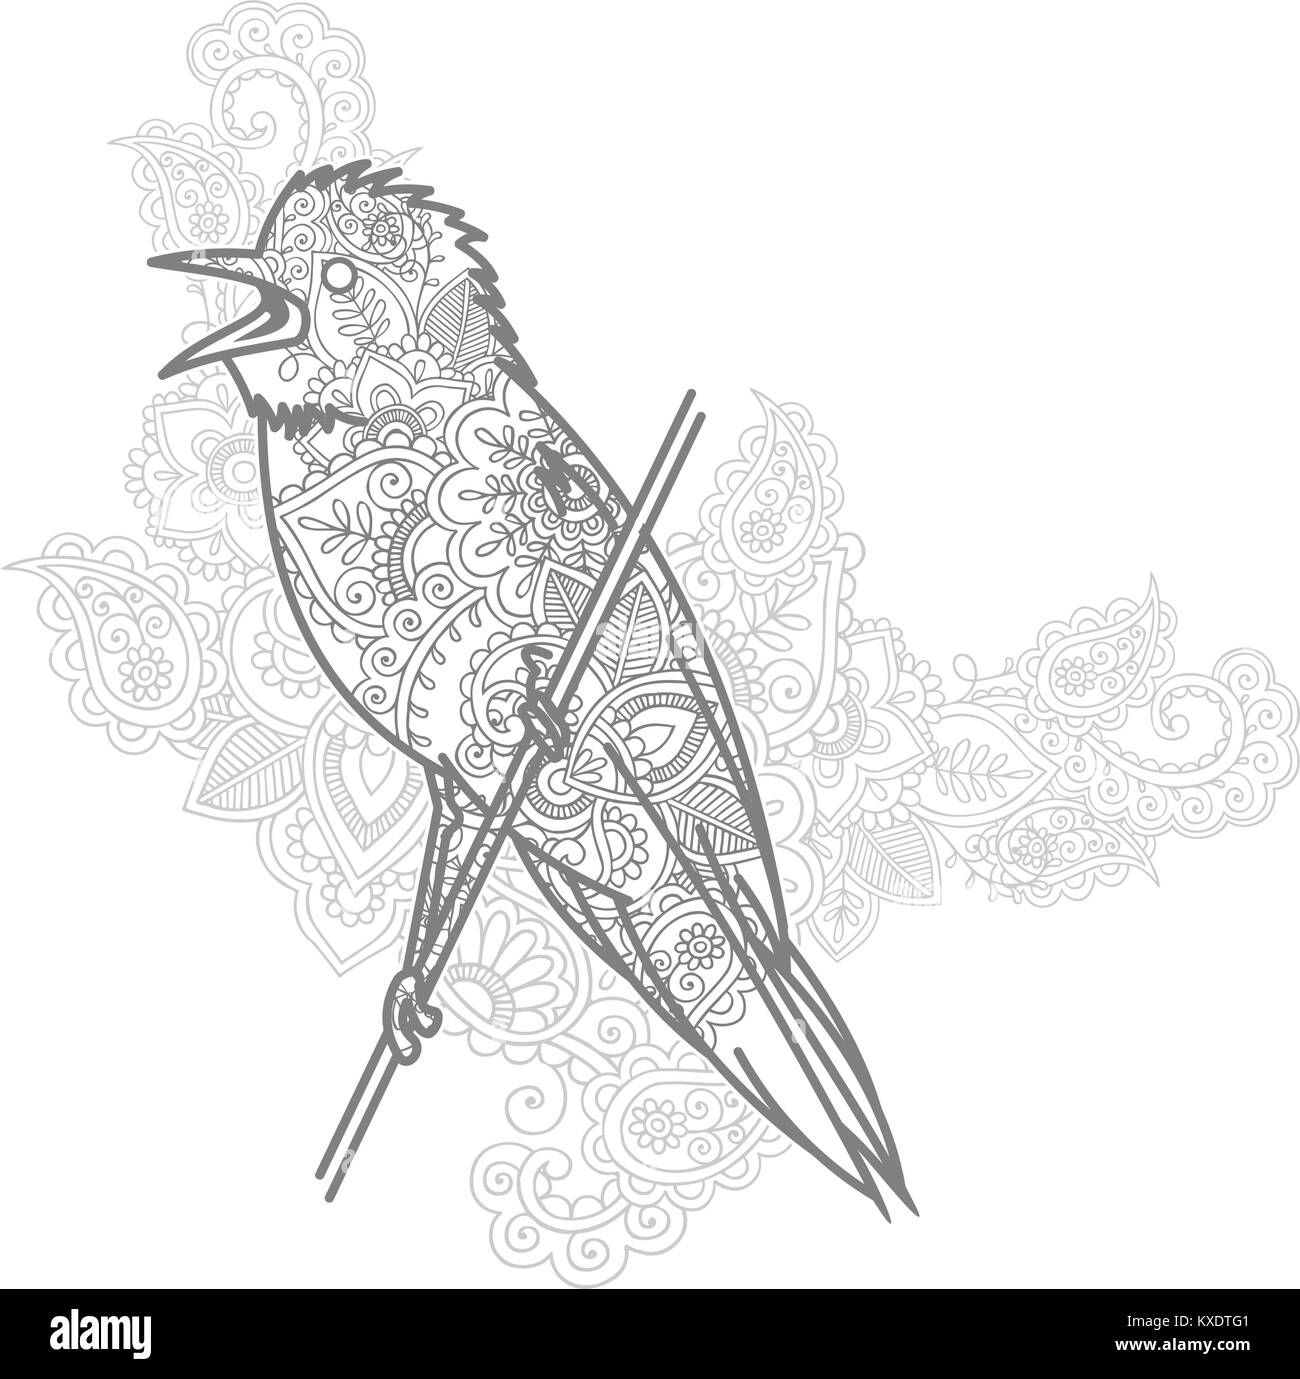 hand drawn doodle bird paisley adult stress release coloring page ...